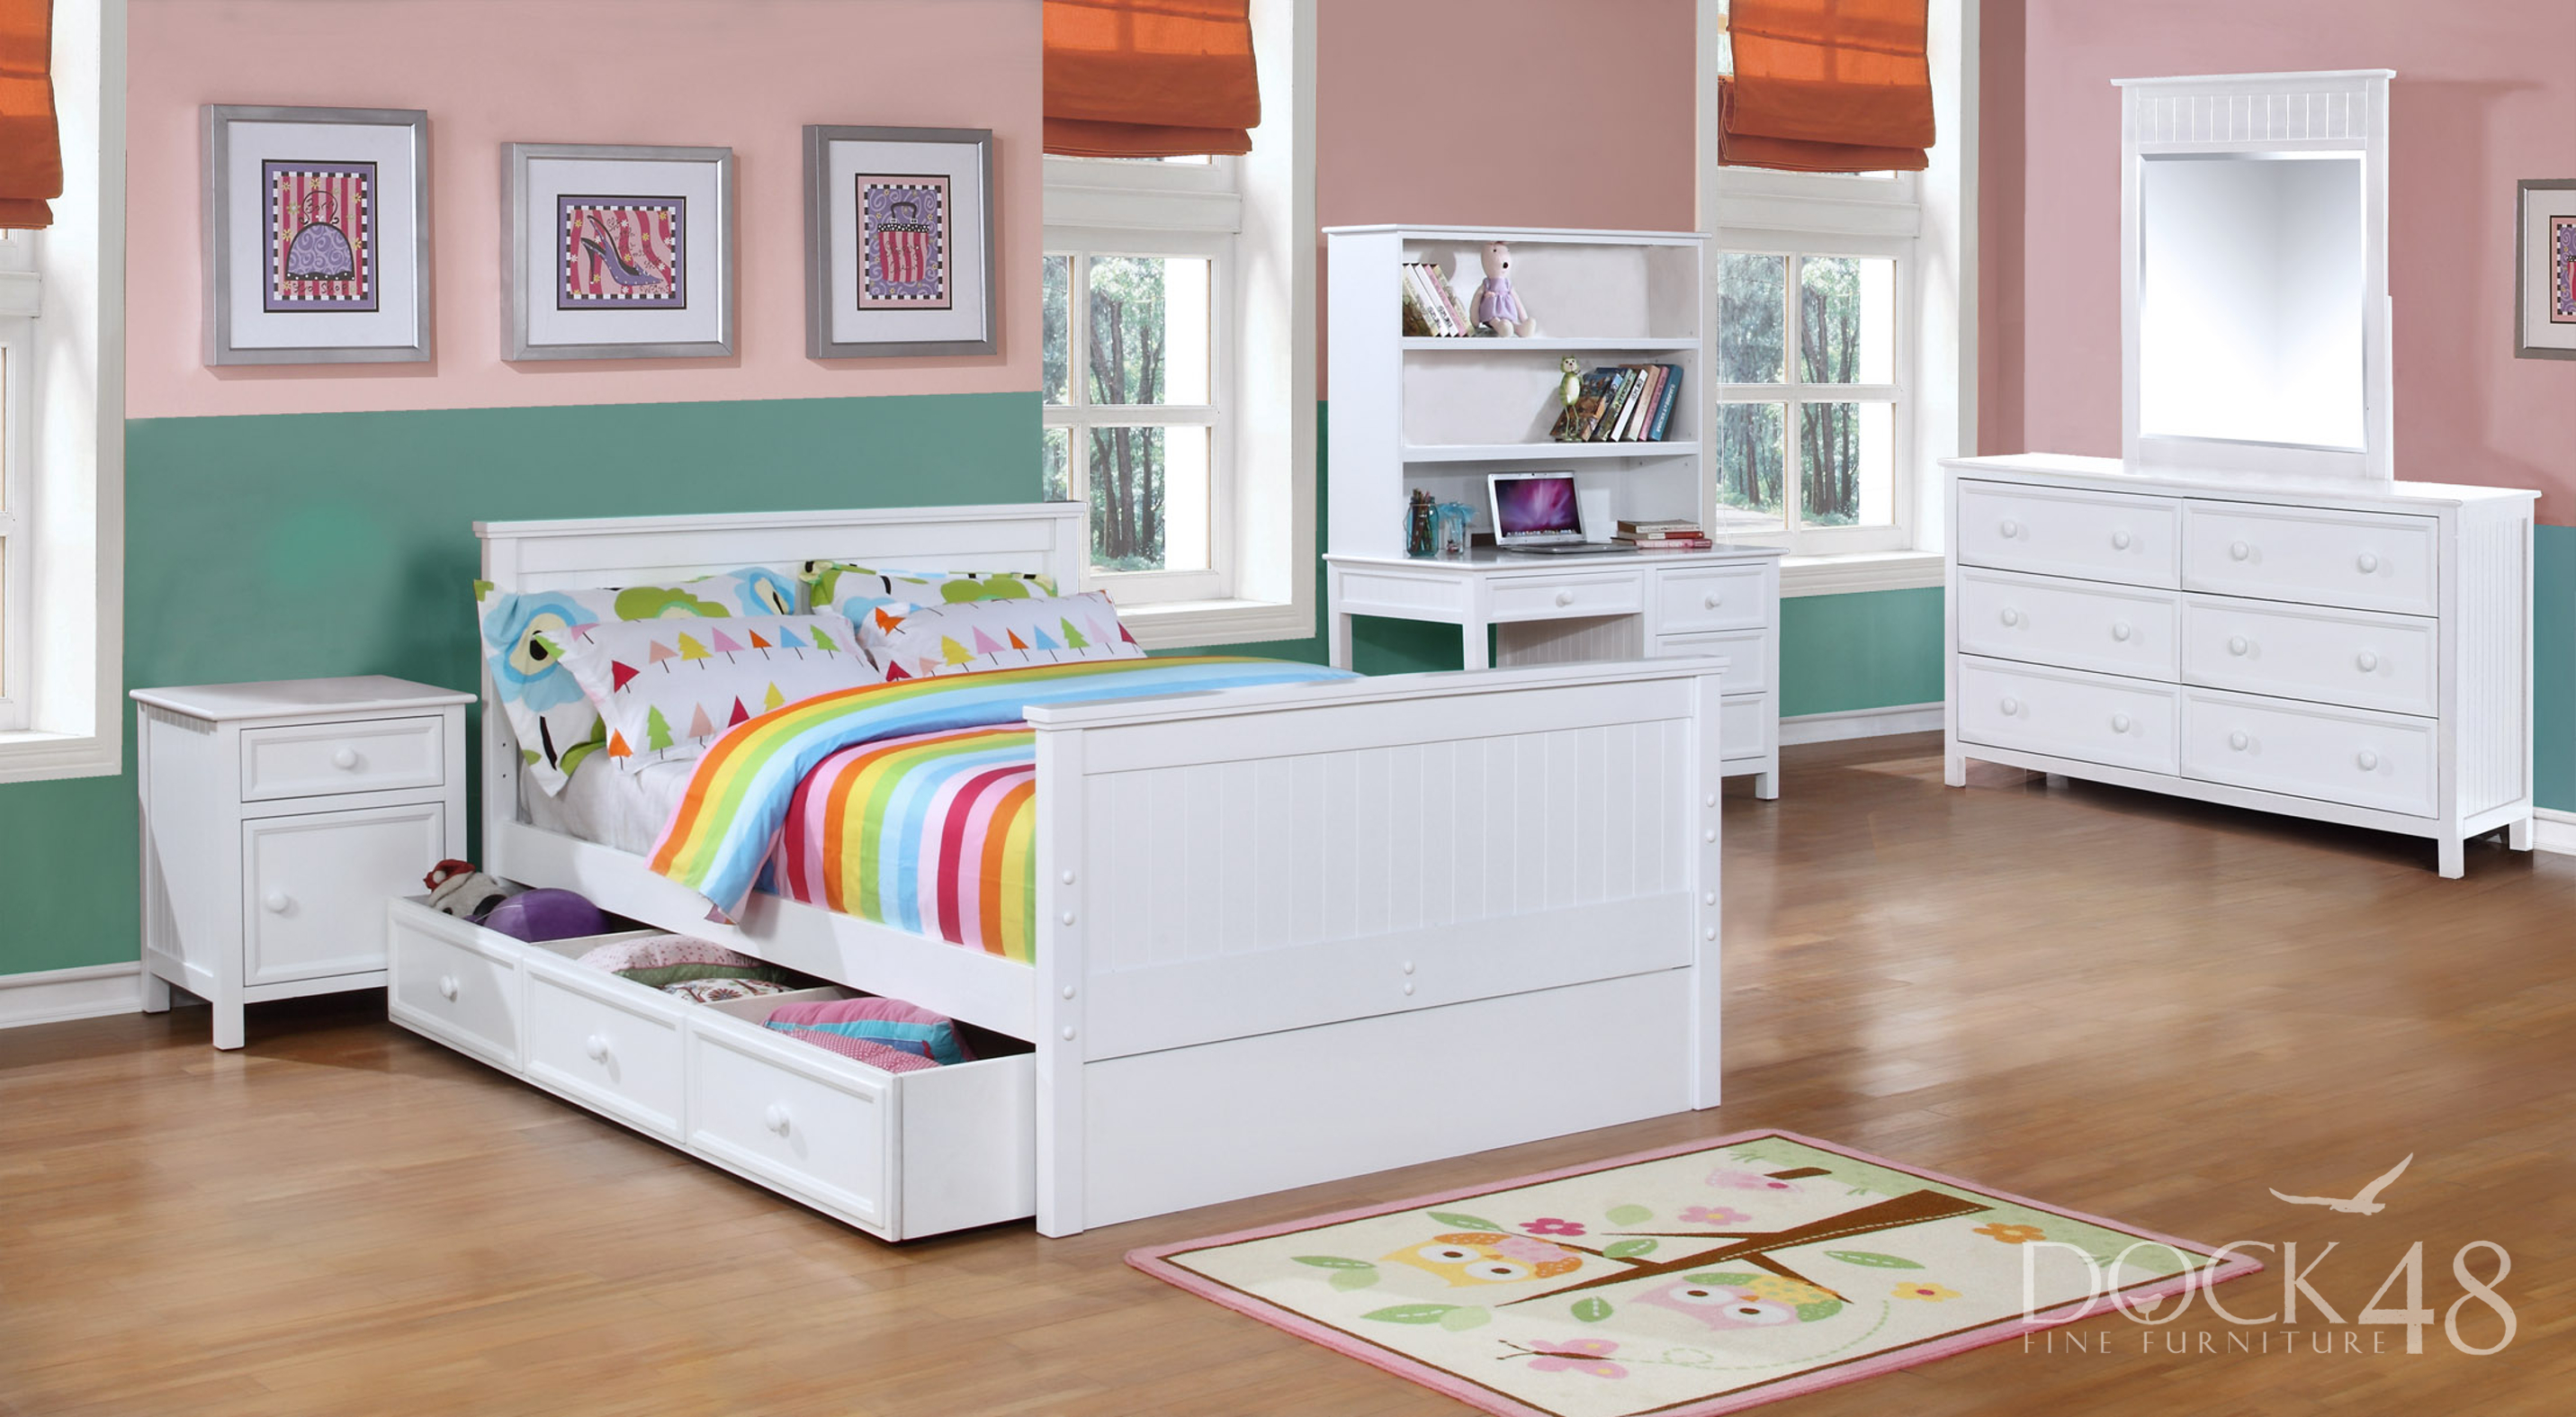 Beadboard Full Bed with Summerlin Collection White